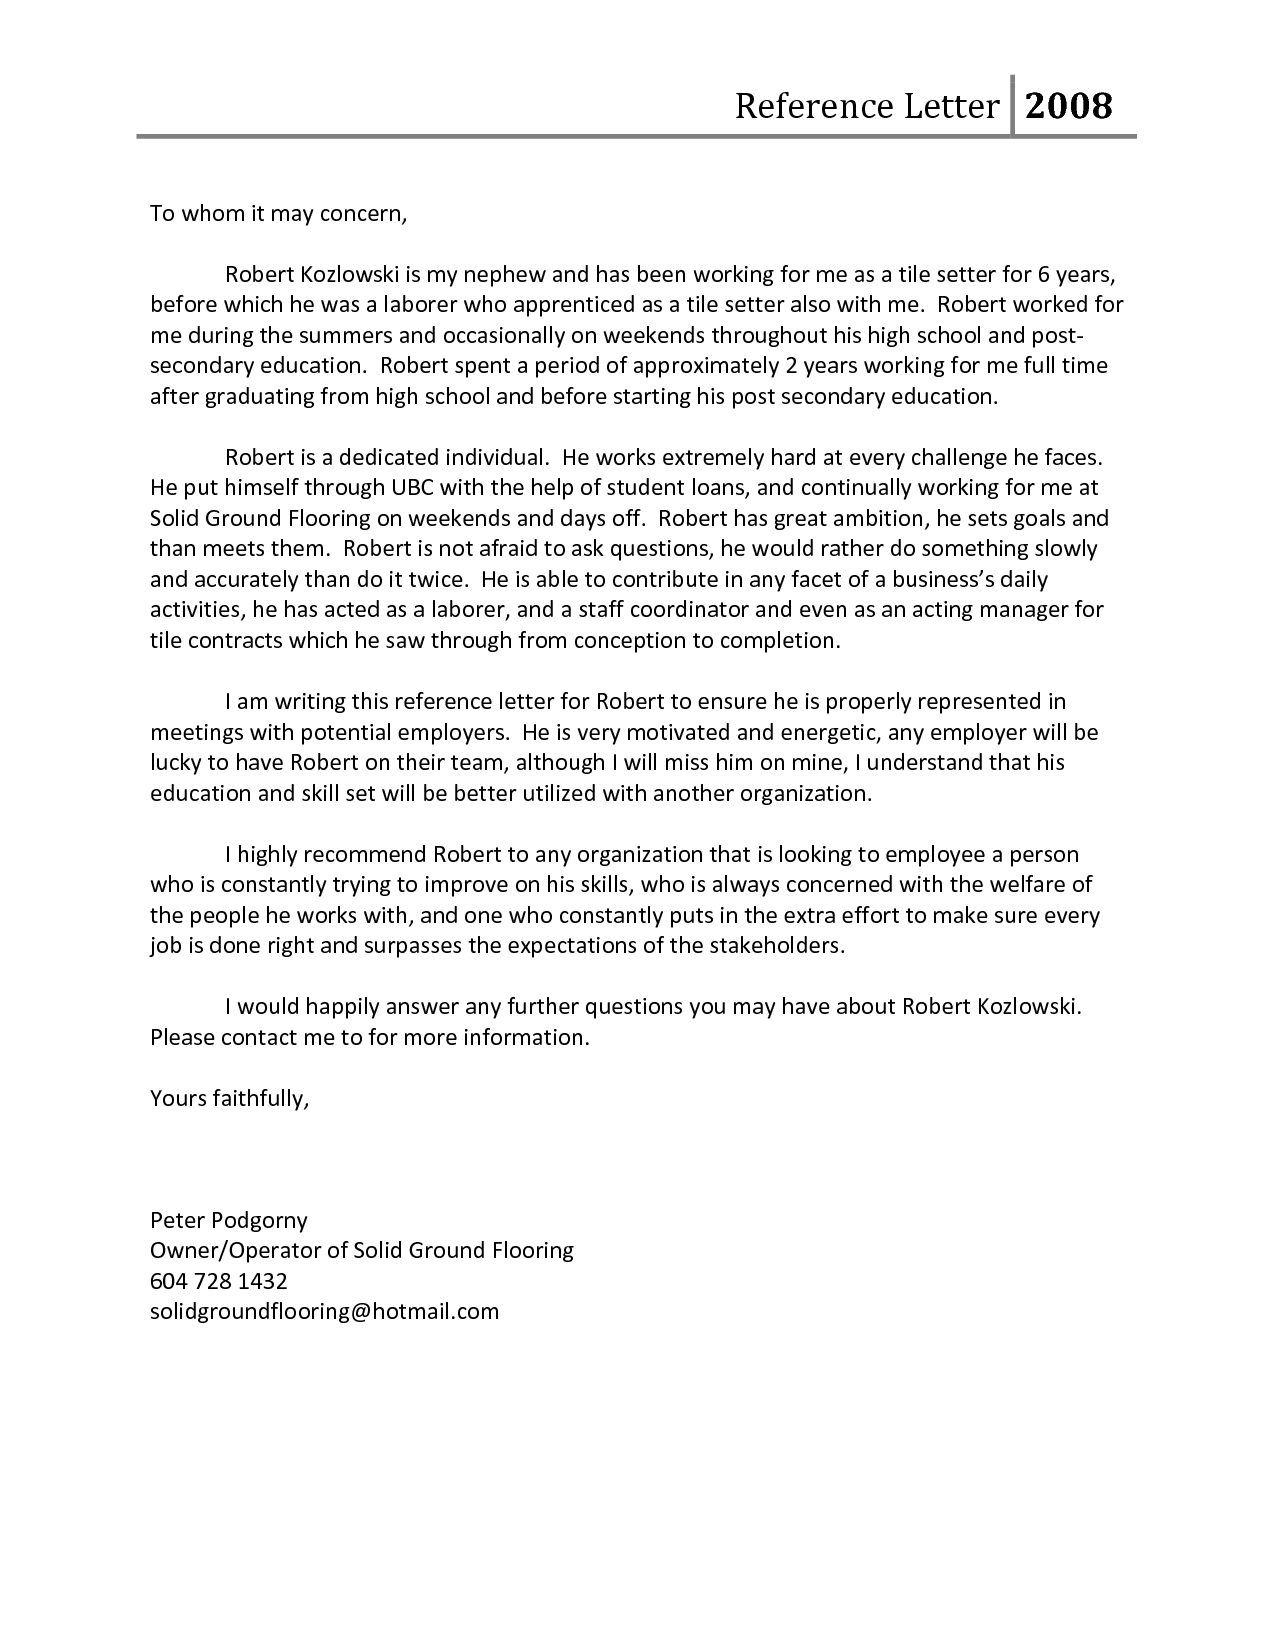 Letter Templates To Whom It May Concern from i0.wp.com